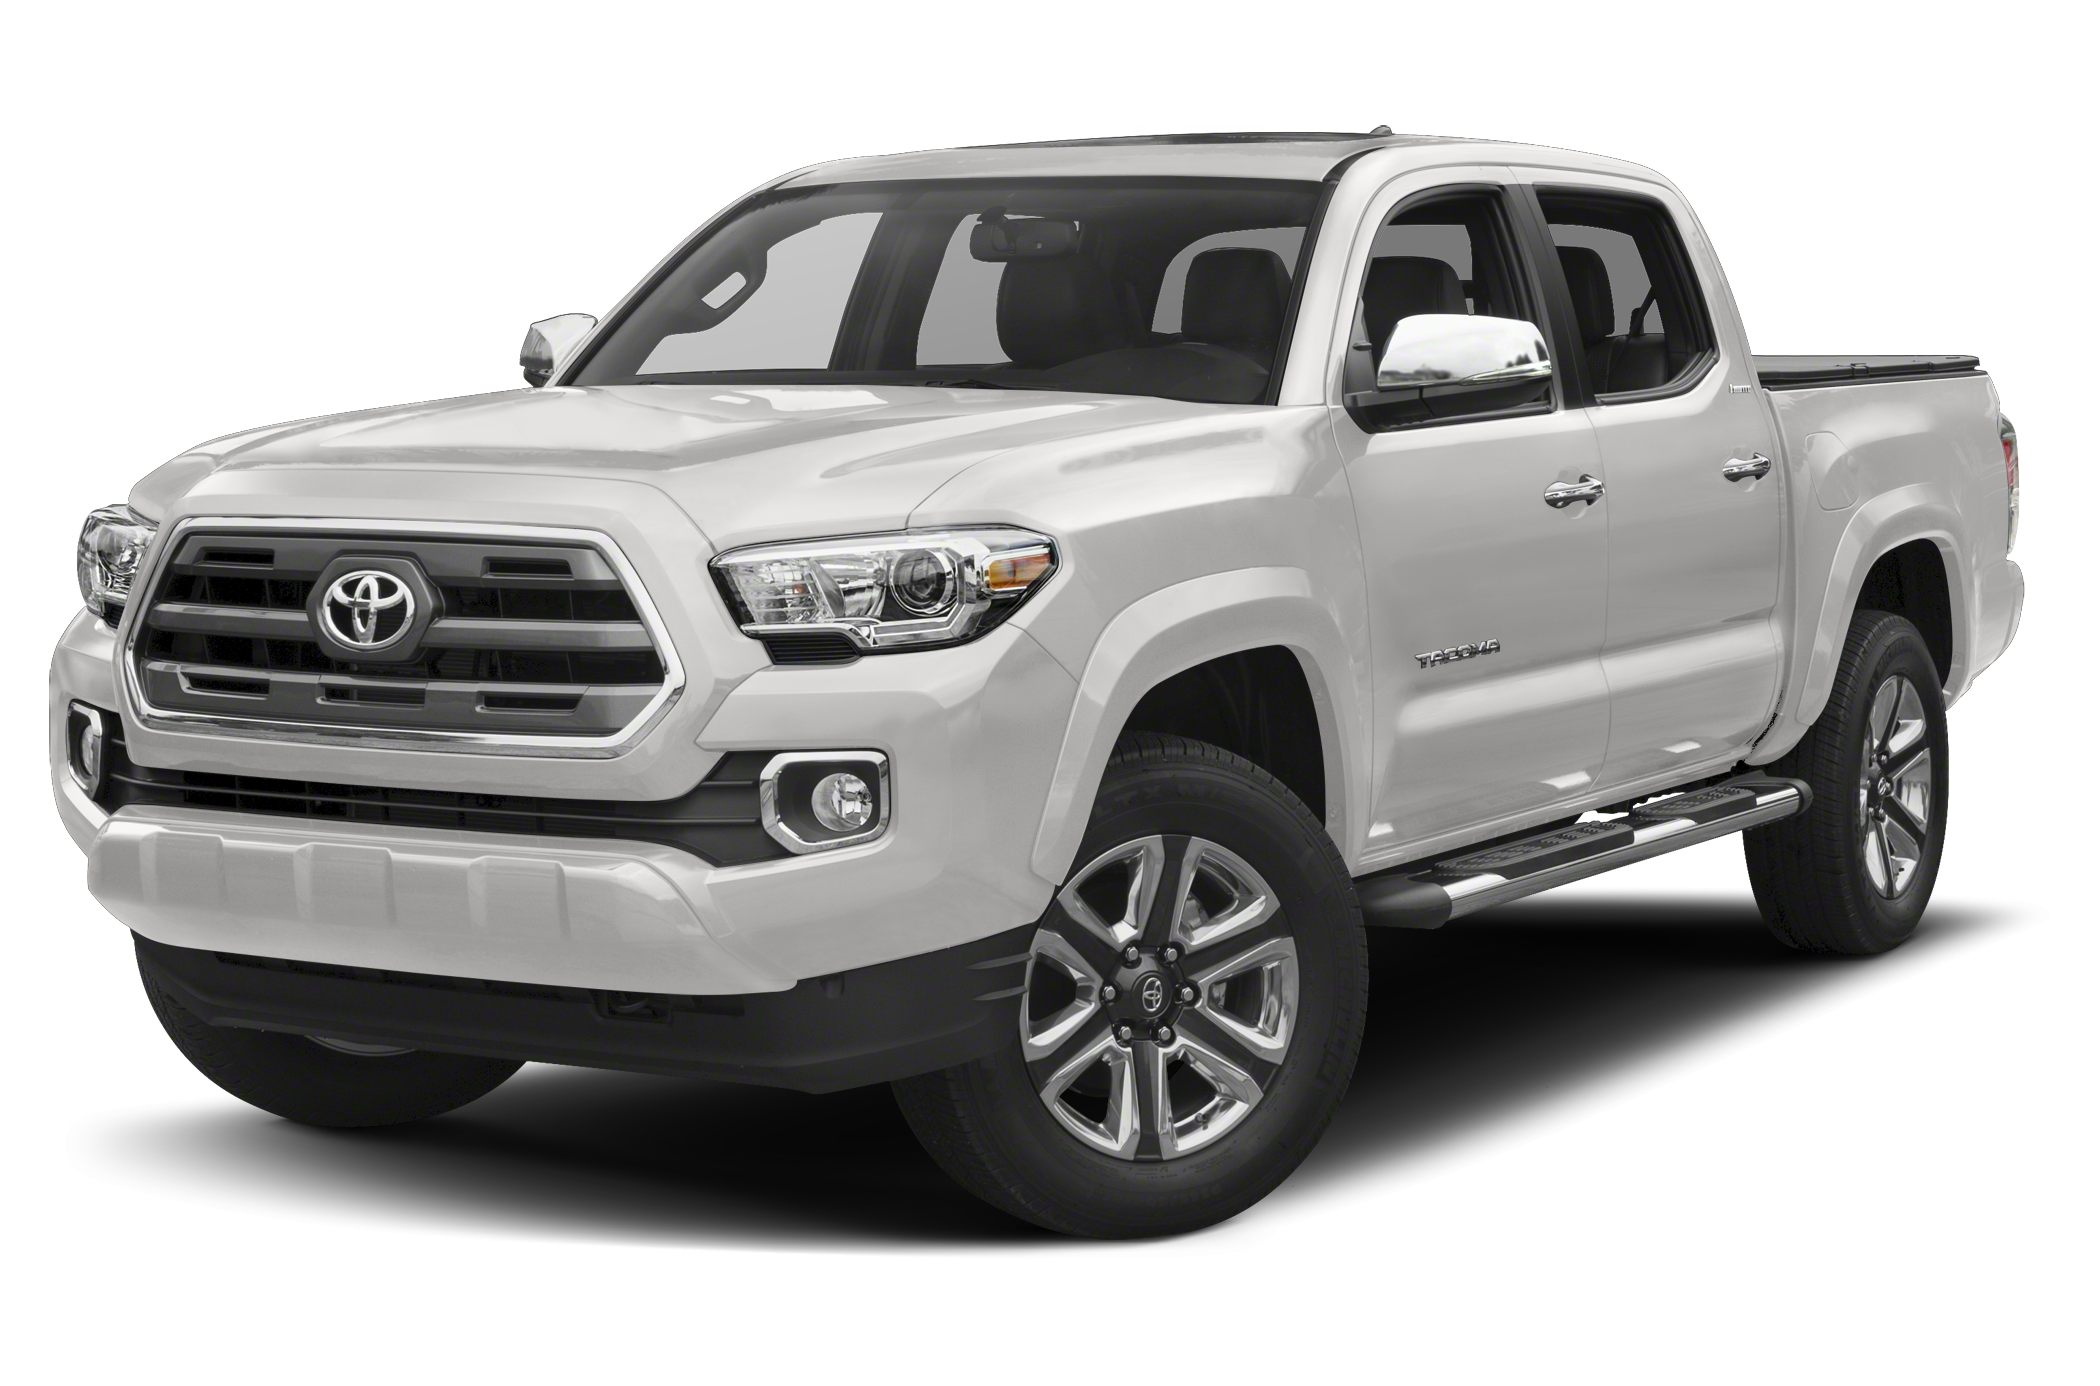 2017 Toyota Tacoma Limited Westboro Toyota is proud to present HASSLE FREE BUYING EXPERIENCE with